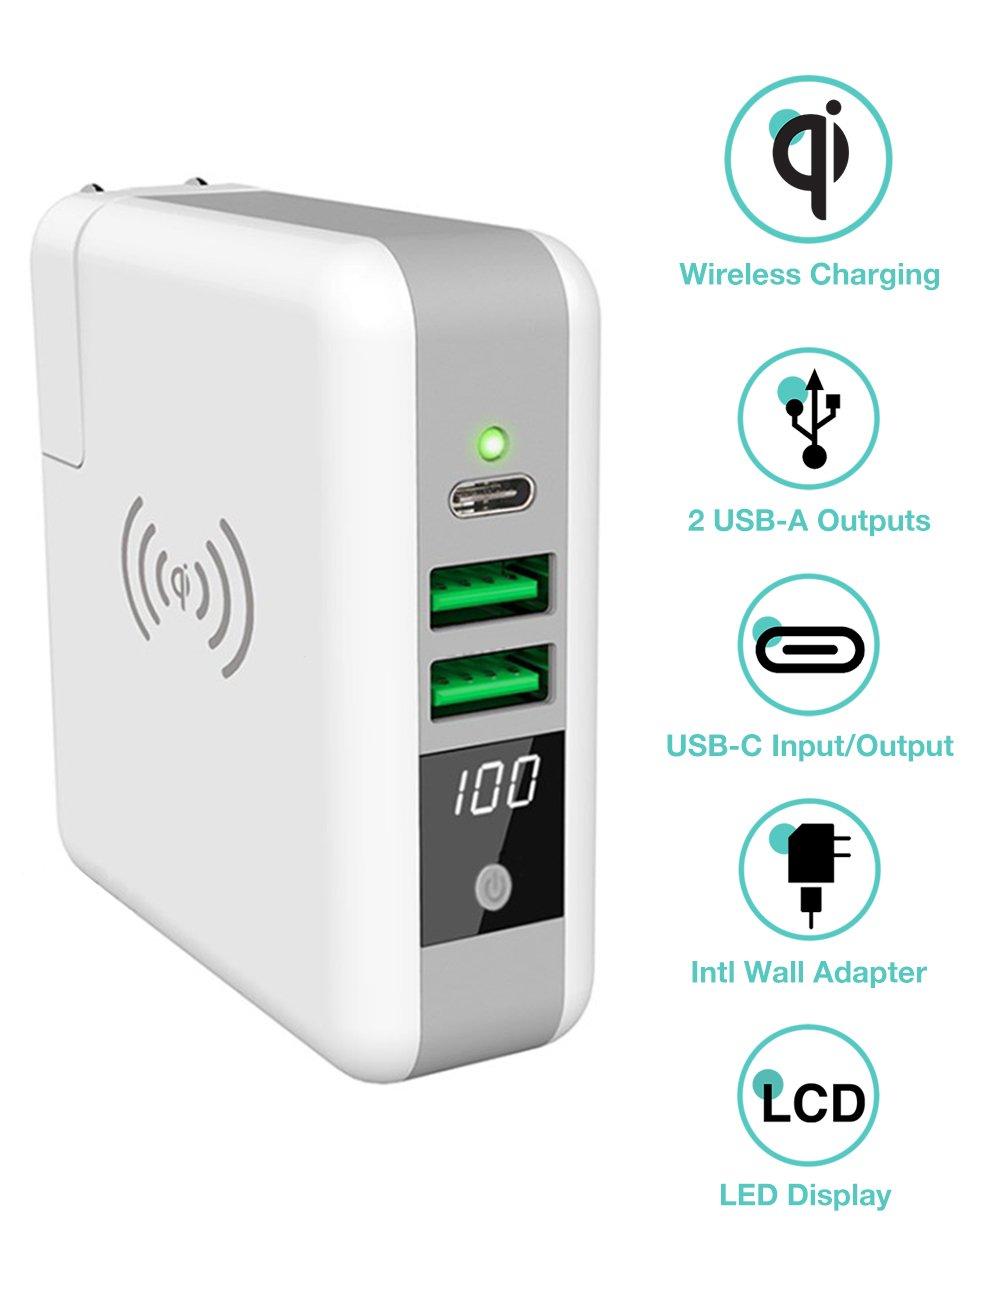 All-in-1 Universal Travel Adapter, Wireless Charger & 6700mAh Power Bank, with wall plug, Dual Usb ports,Type-C port In, International adapter for iPhone, Samsung, iPad, Tablet, Smartphone, Camera and so on. Dual Usb ports, Type-C port In Solarbox